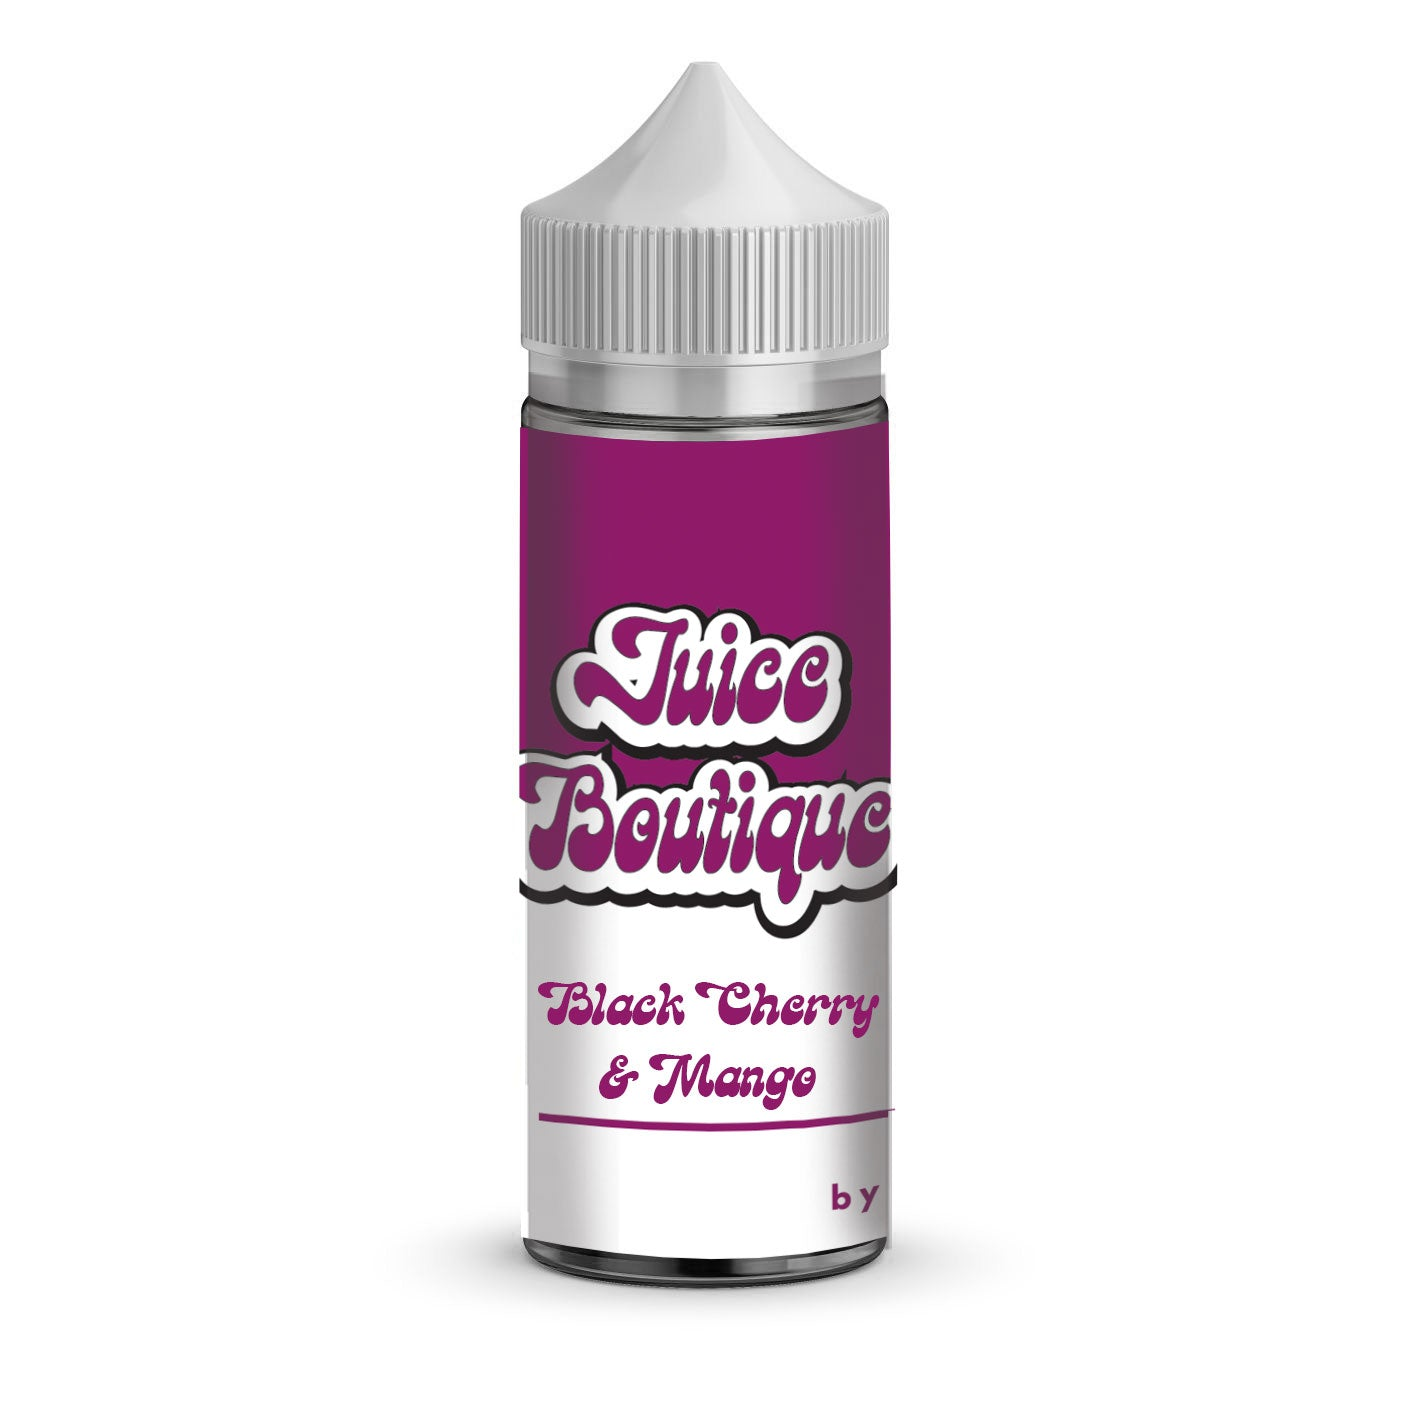 Juice Boutique Black Cherry By Hodges Short Fill E-Liquid (100ml)120ml